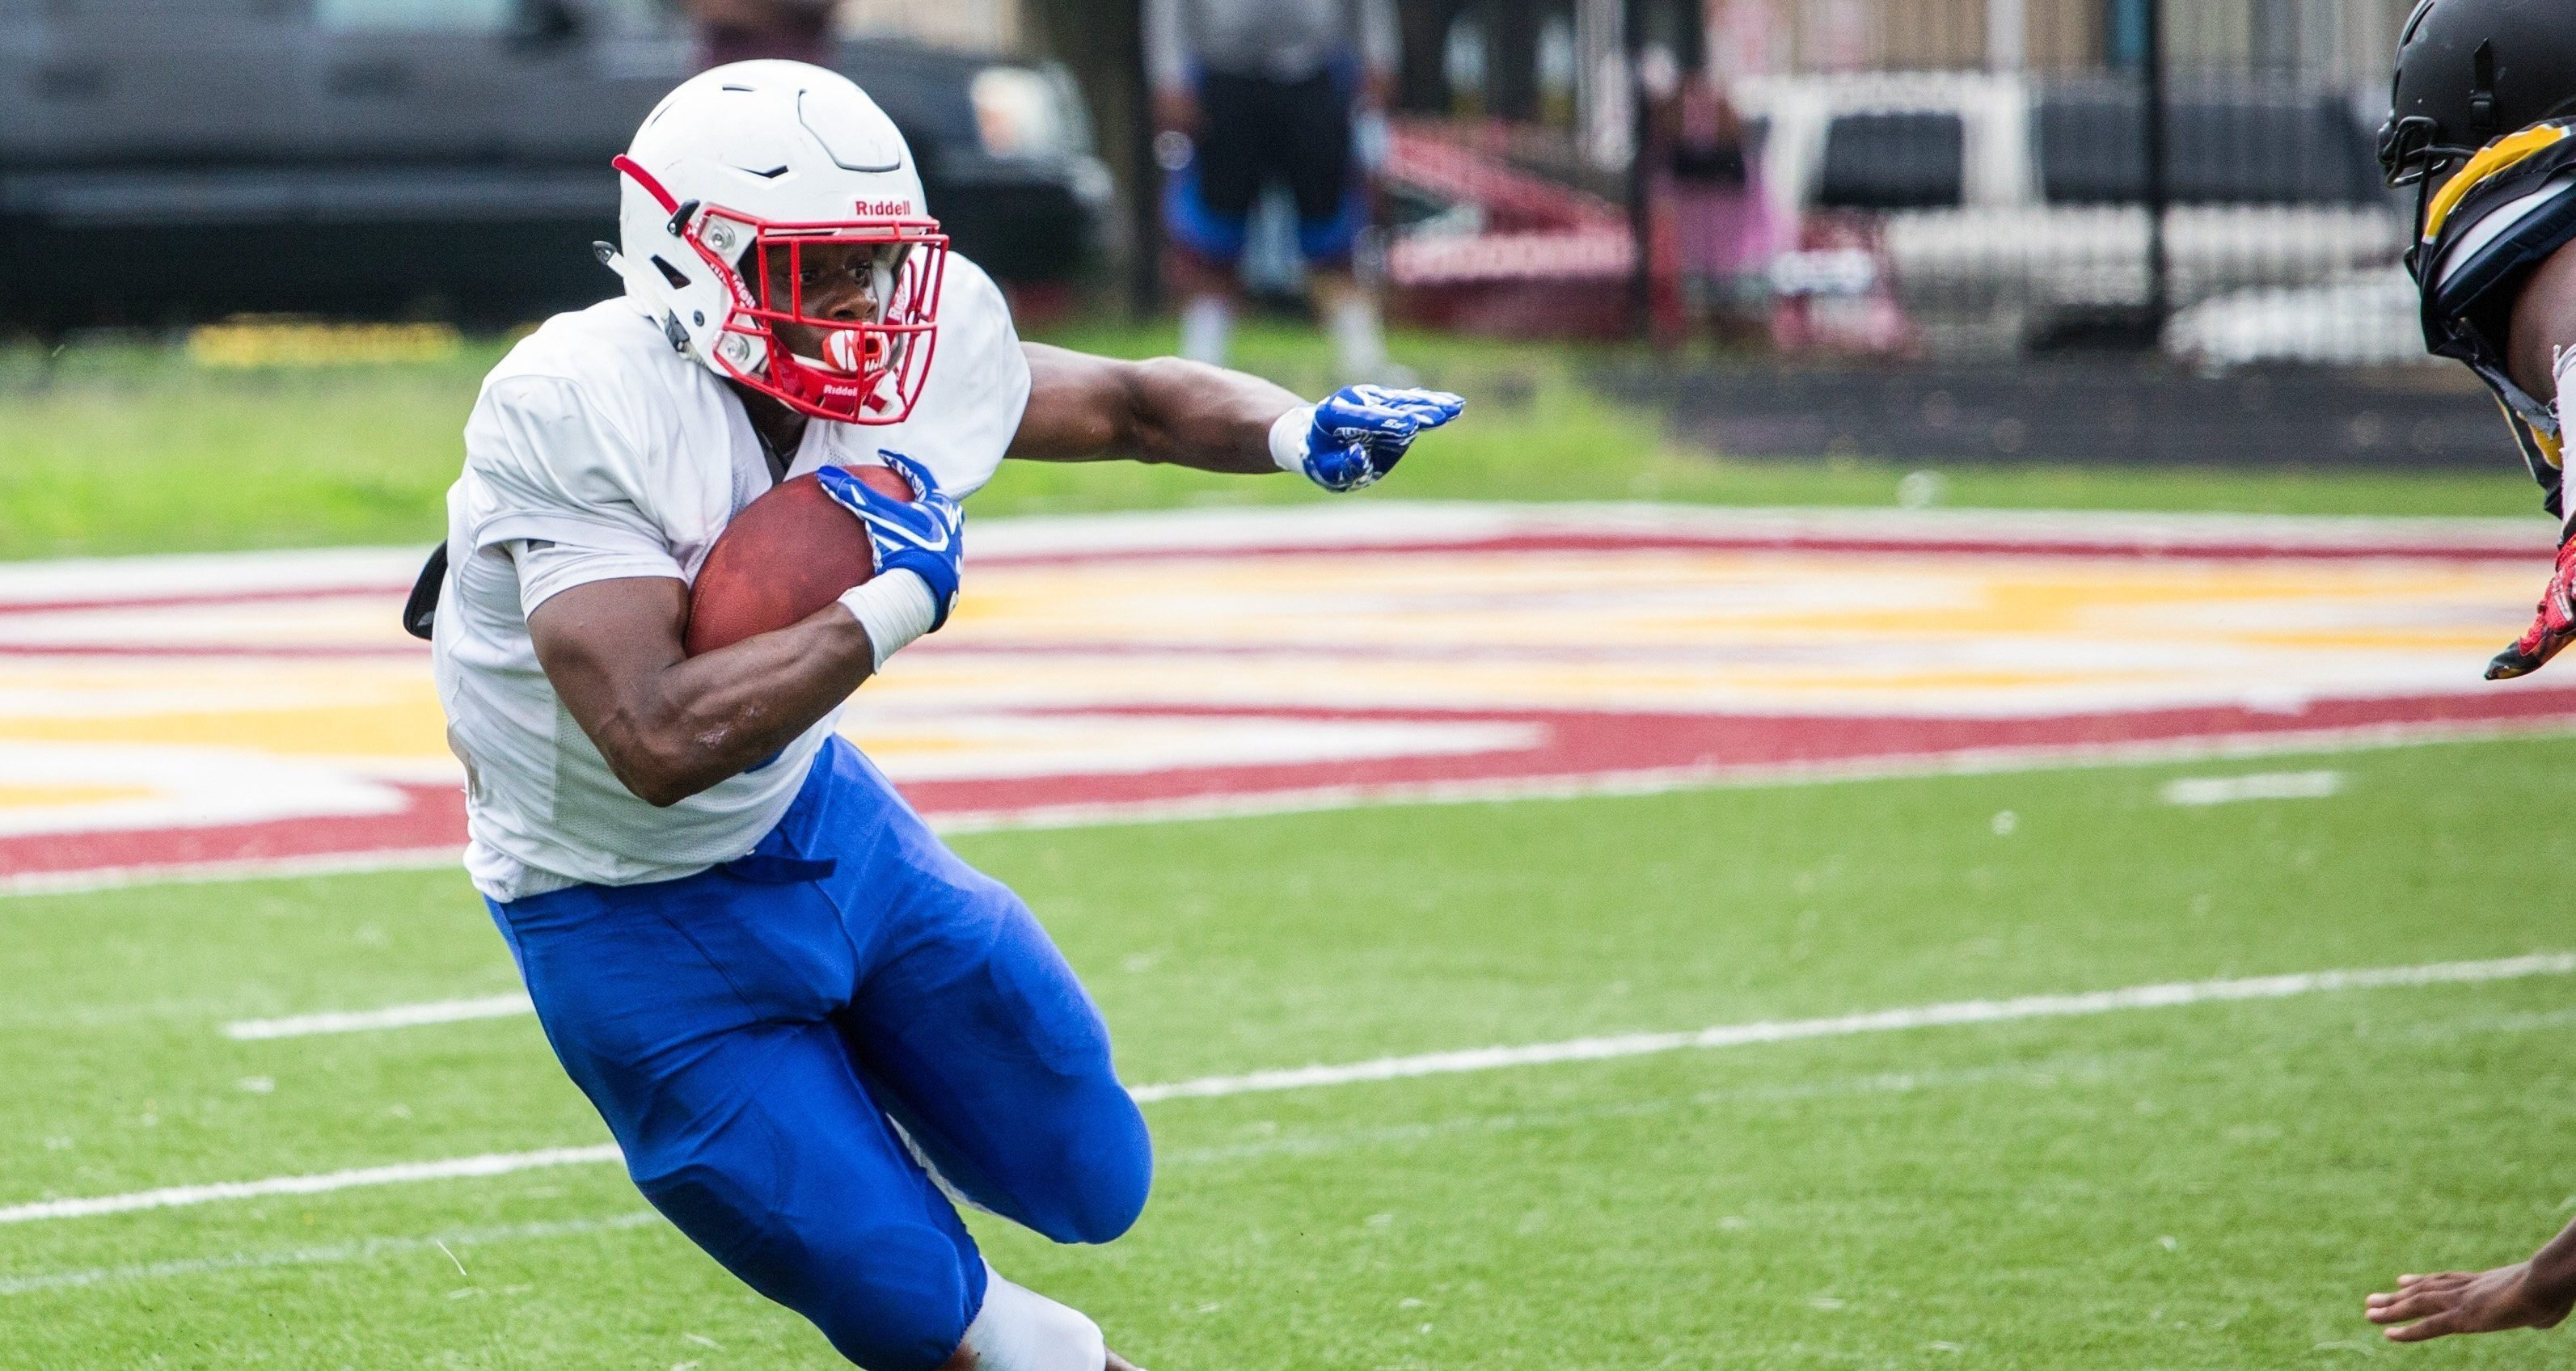 South Carolina lands surprise Memorial Day commitment from 4-star RB